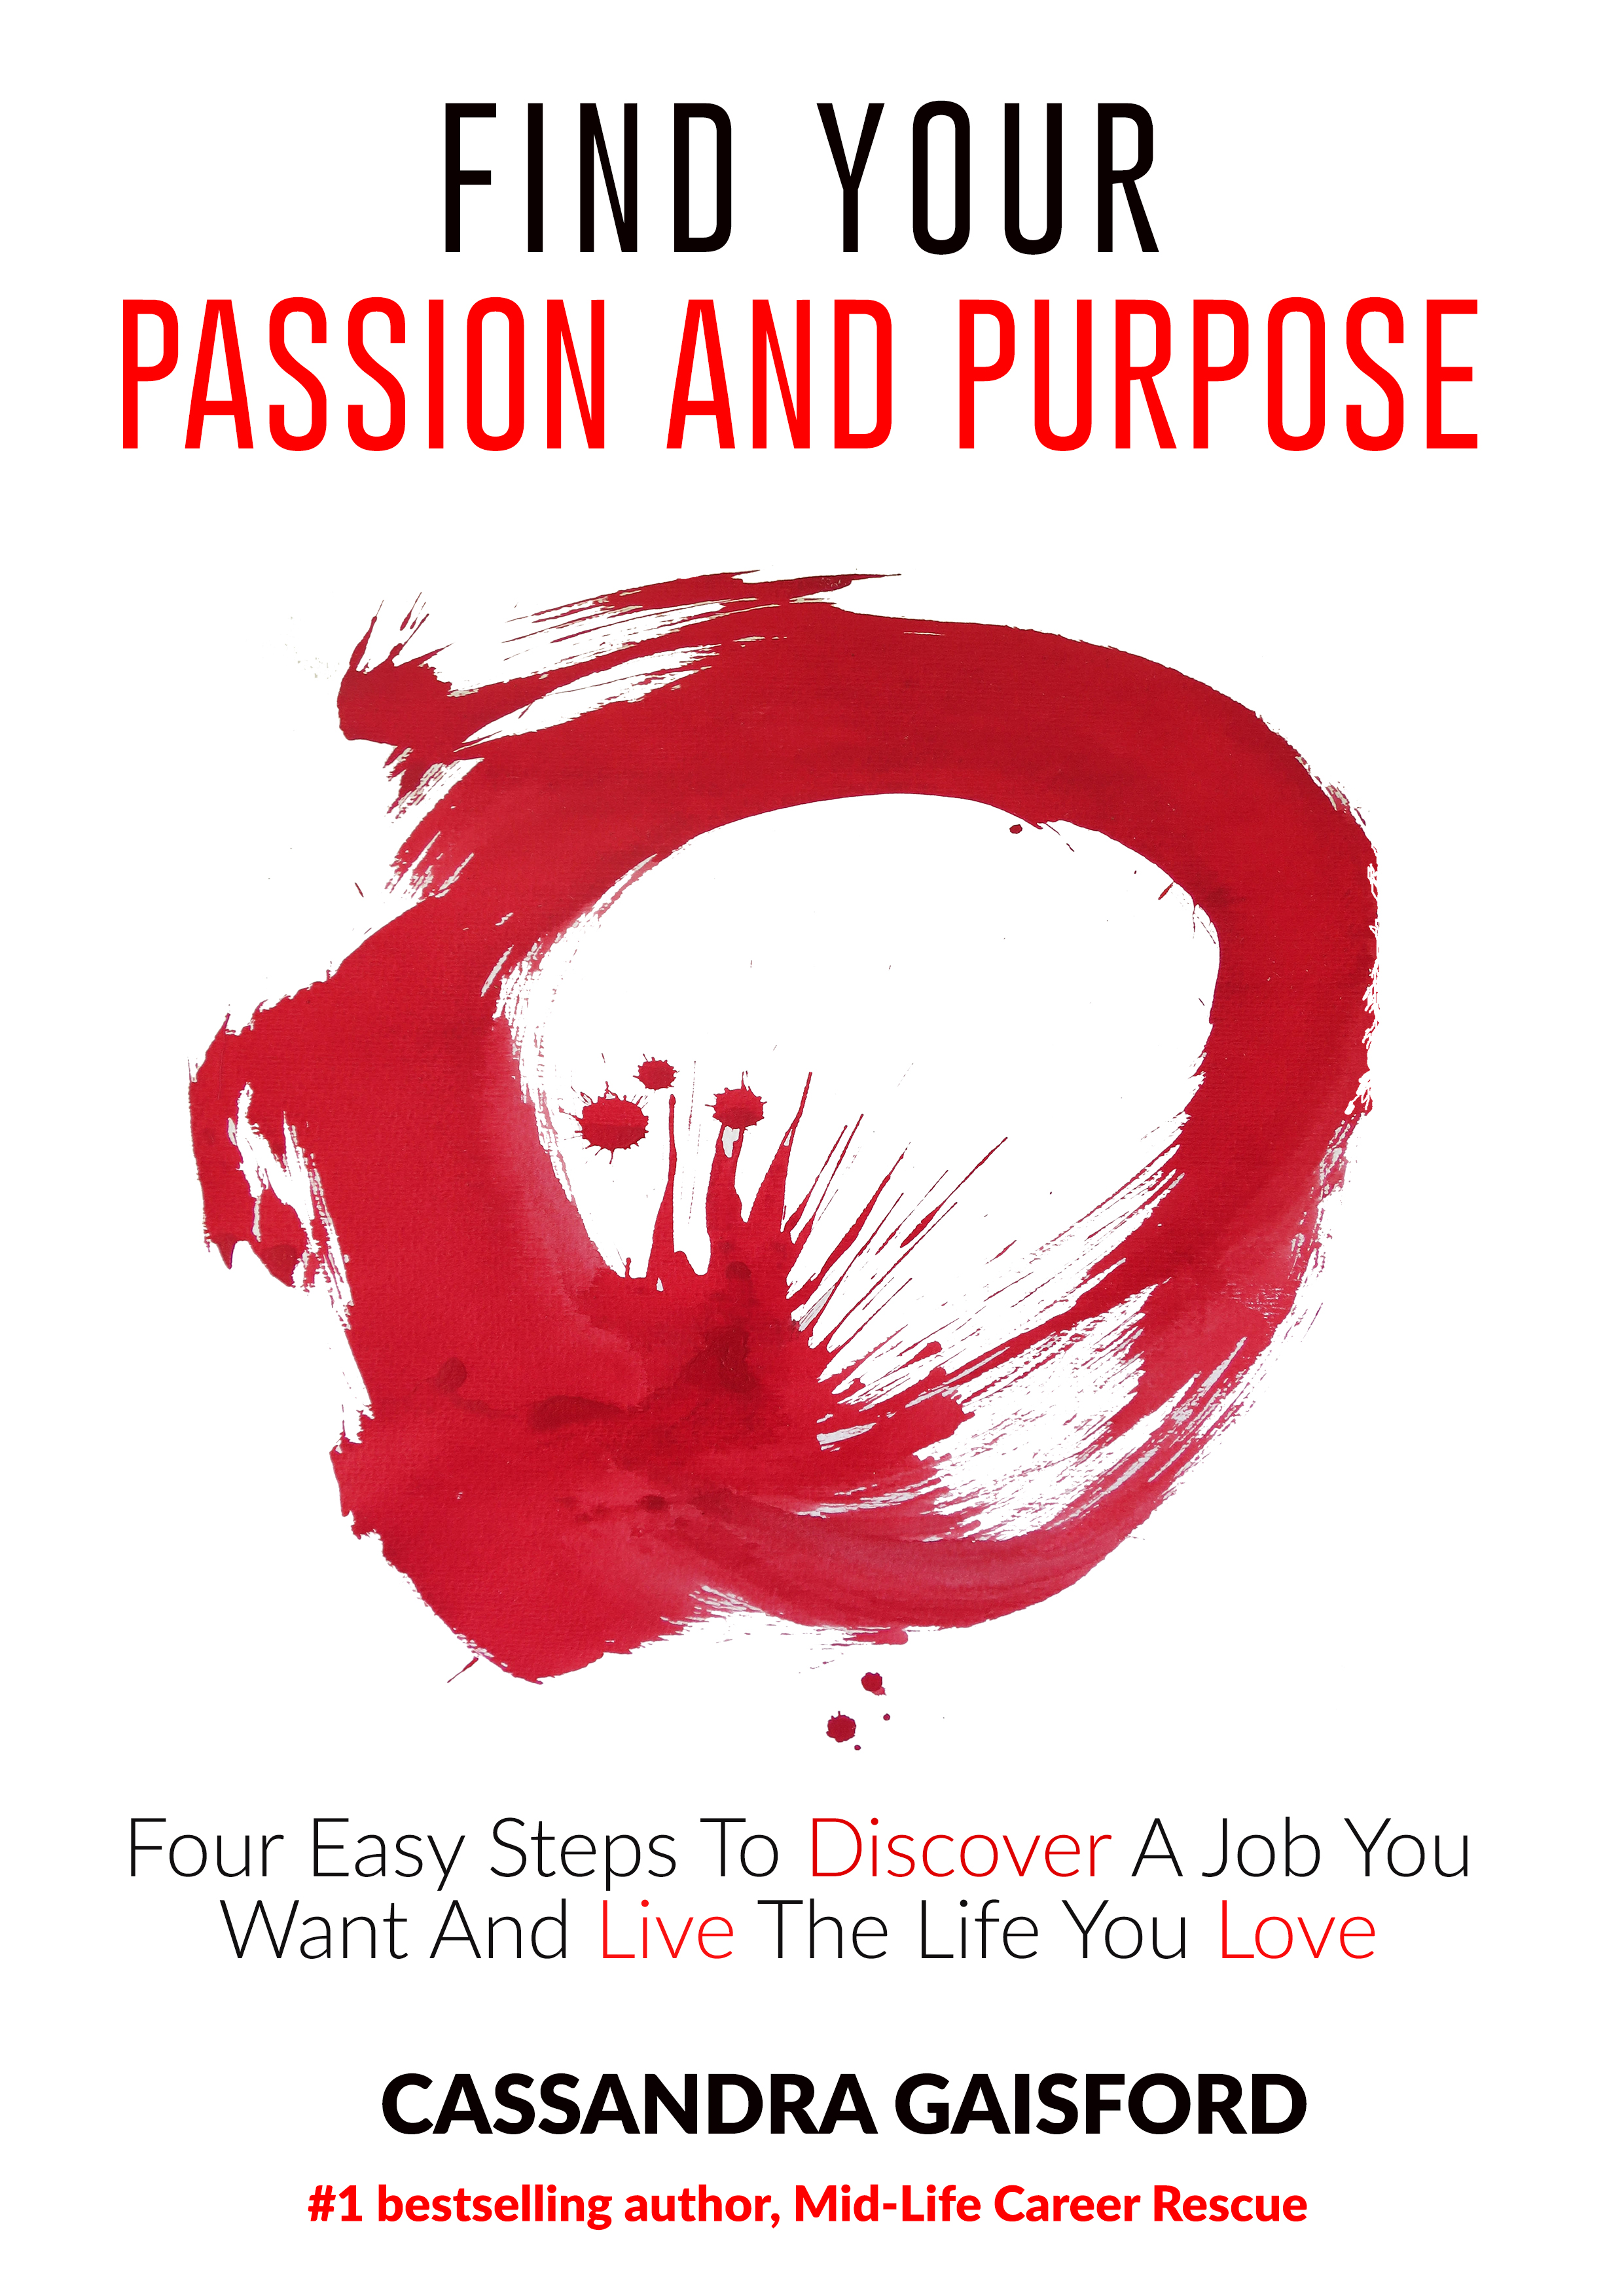 Becoming a published writer cassandra gaisford find your passion and purpose ebook coverv4300dpi fandeluxe Image collections